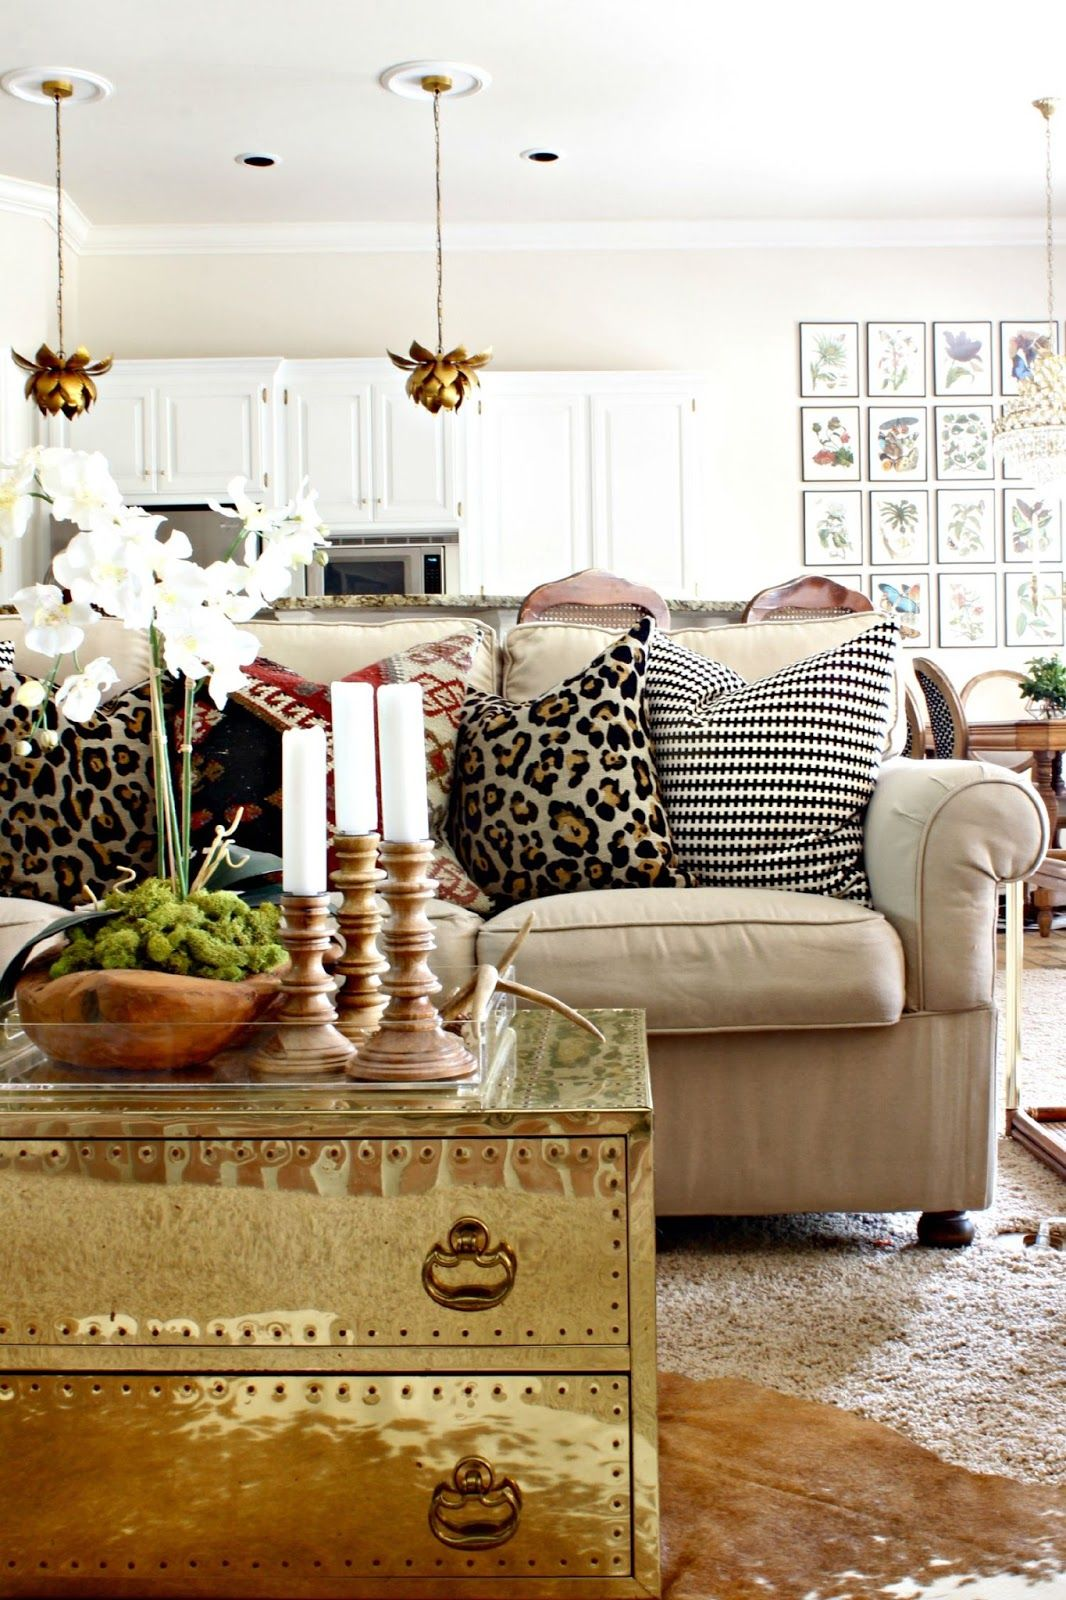 Fall Decor Br Lotus Pendants Trunk Coffee Table Black And White Leopard Kilim Pillows Cowhide Rug Neutral With Pops Of Color